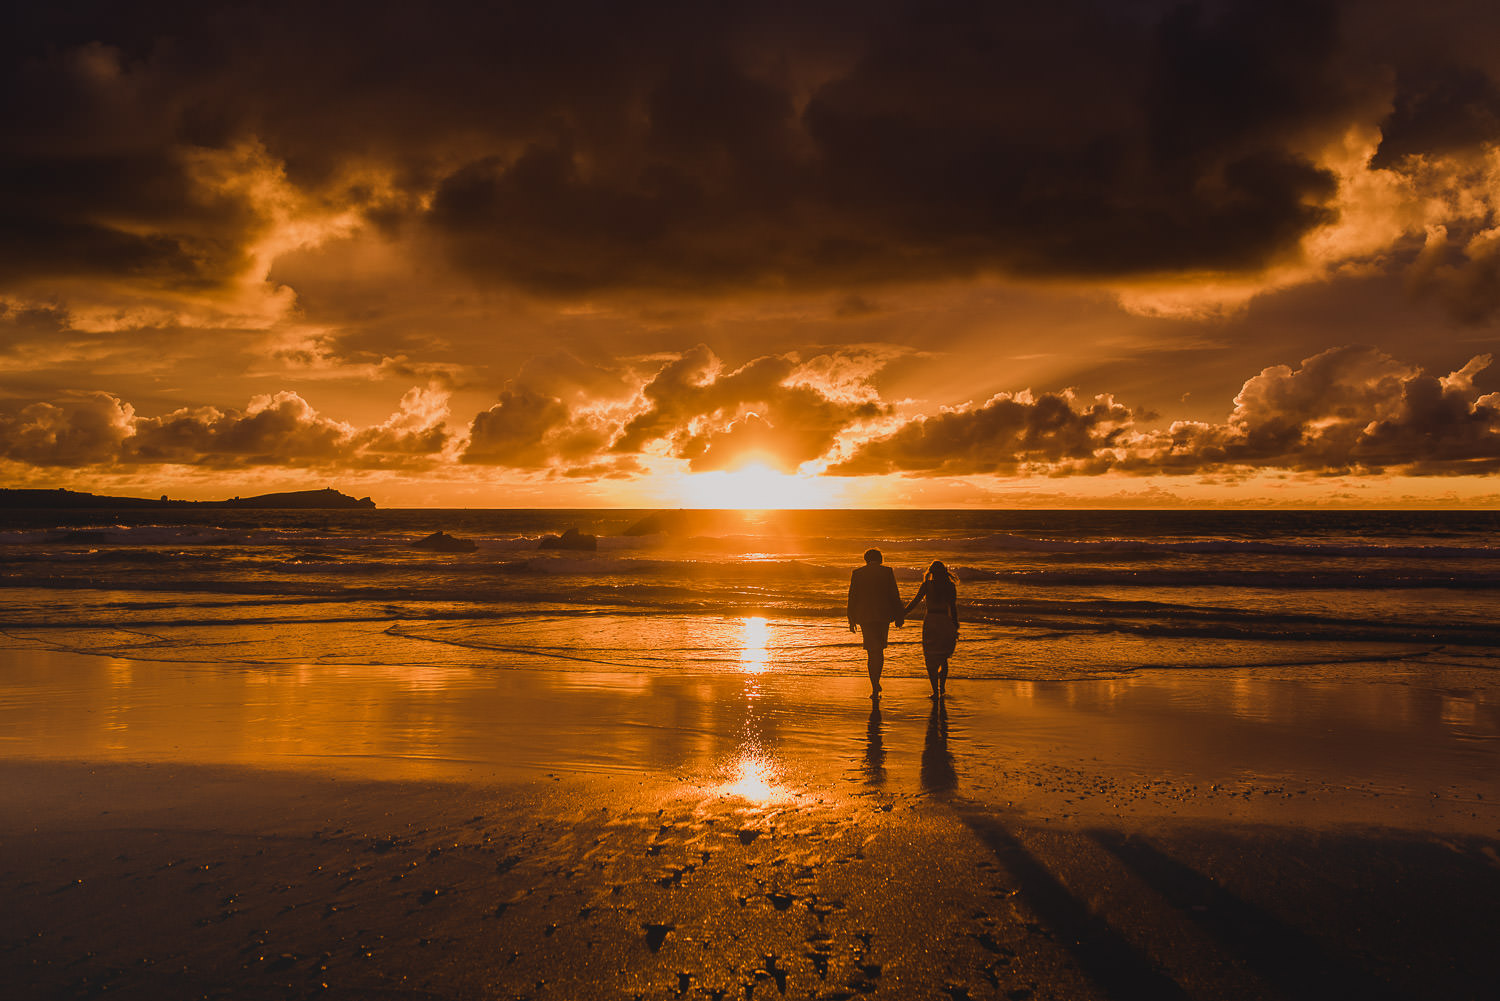 Sunset on your wedding day